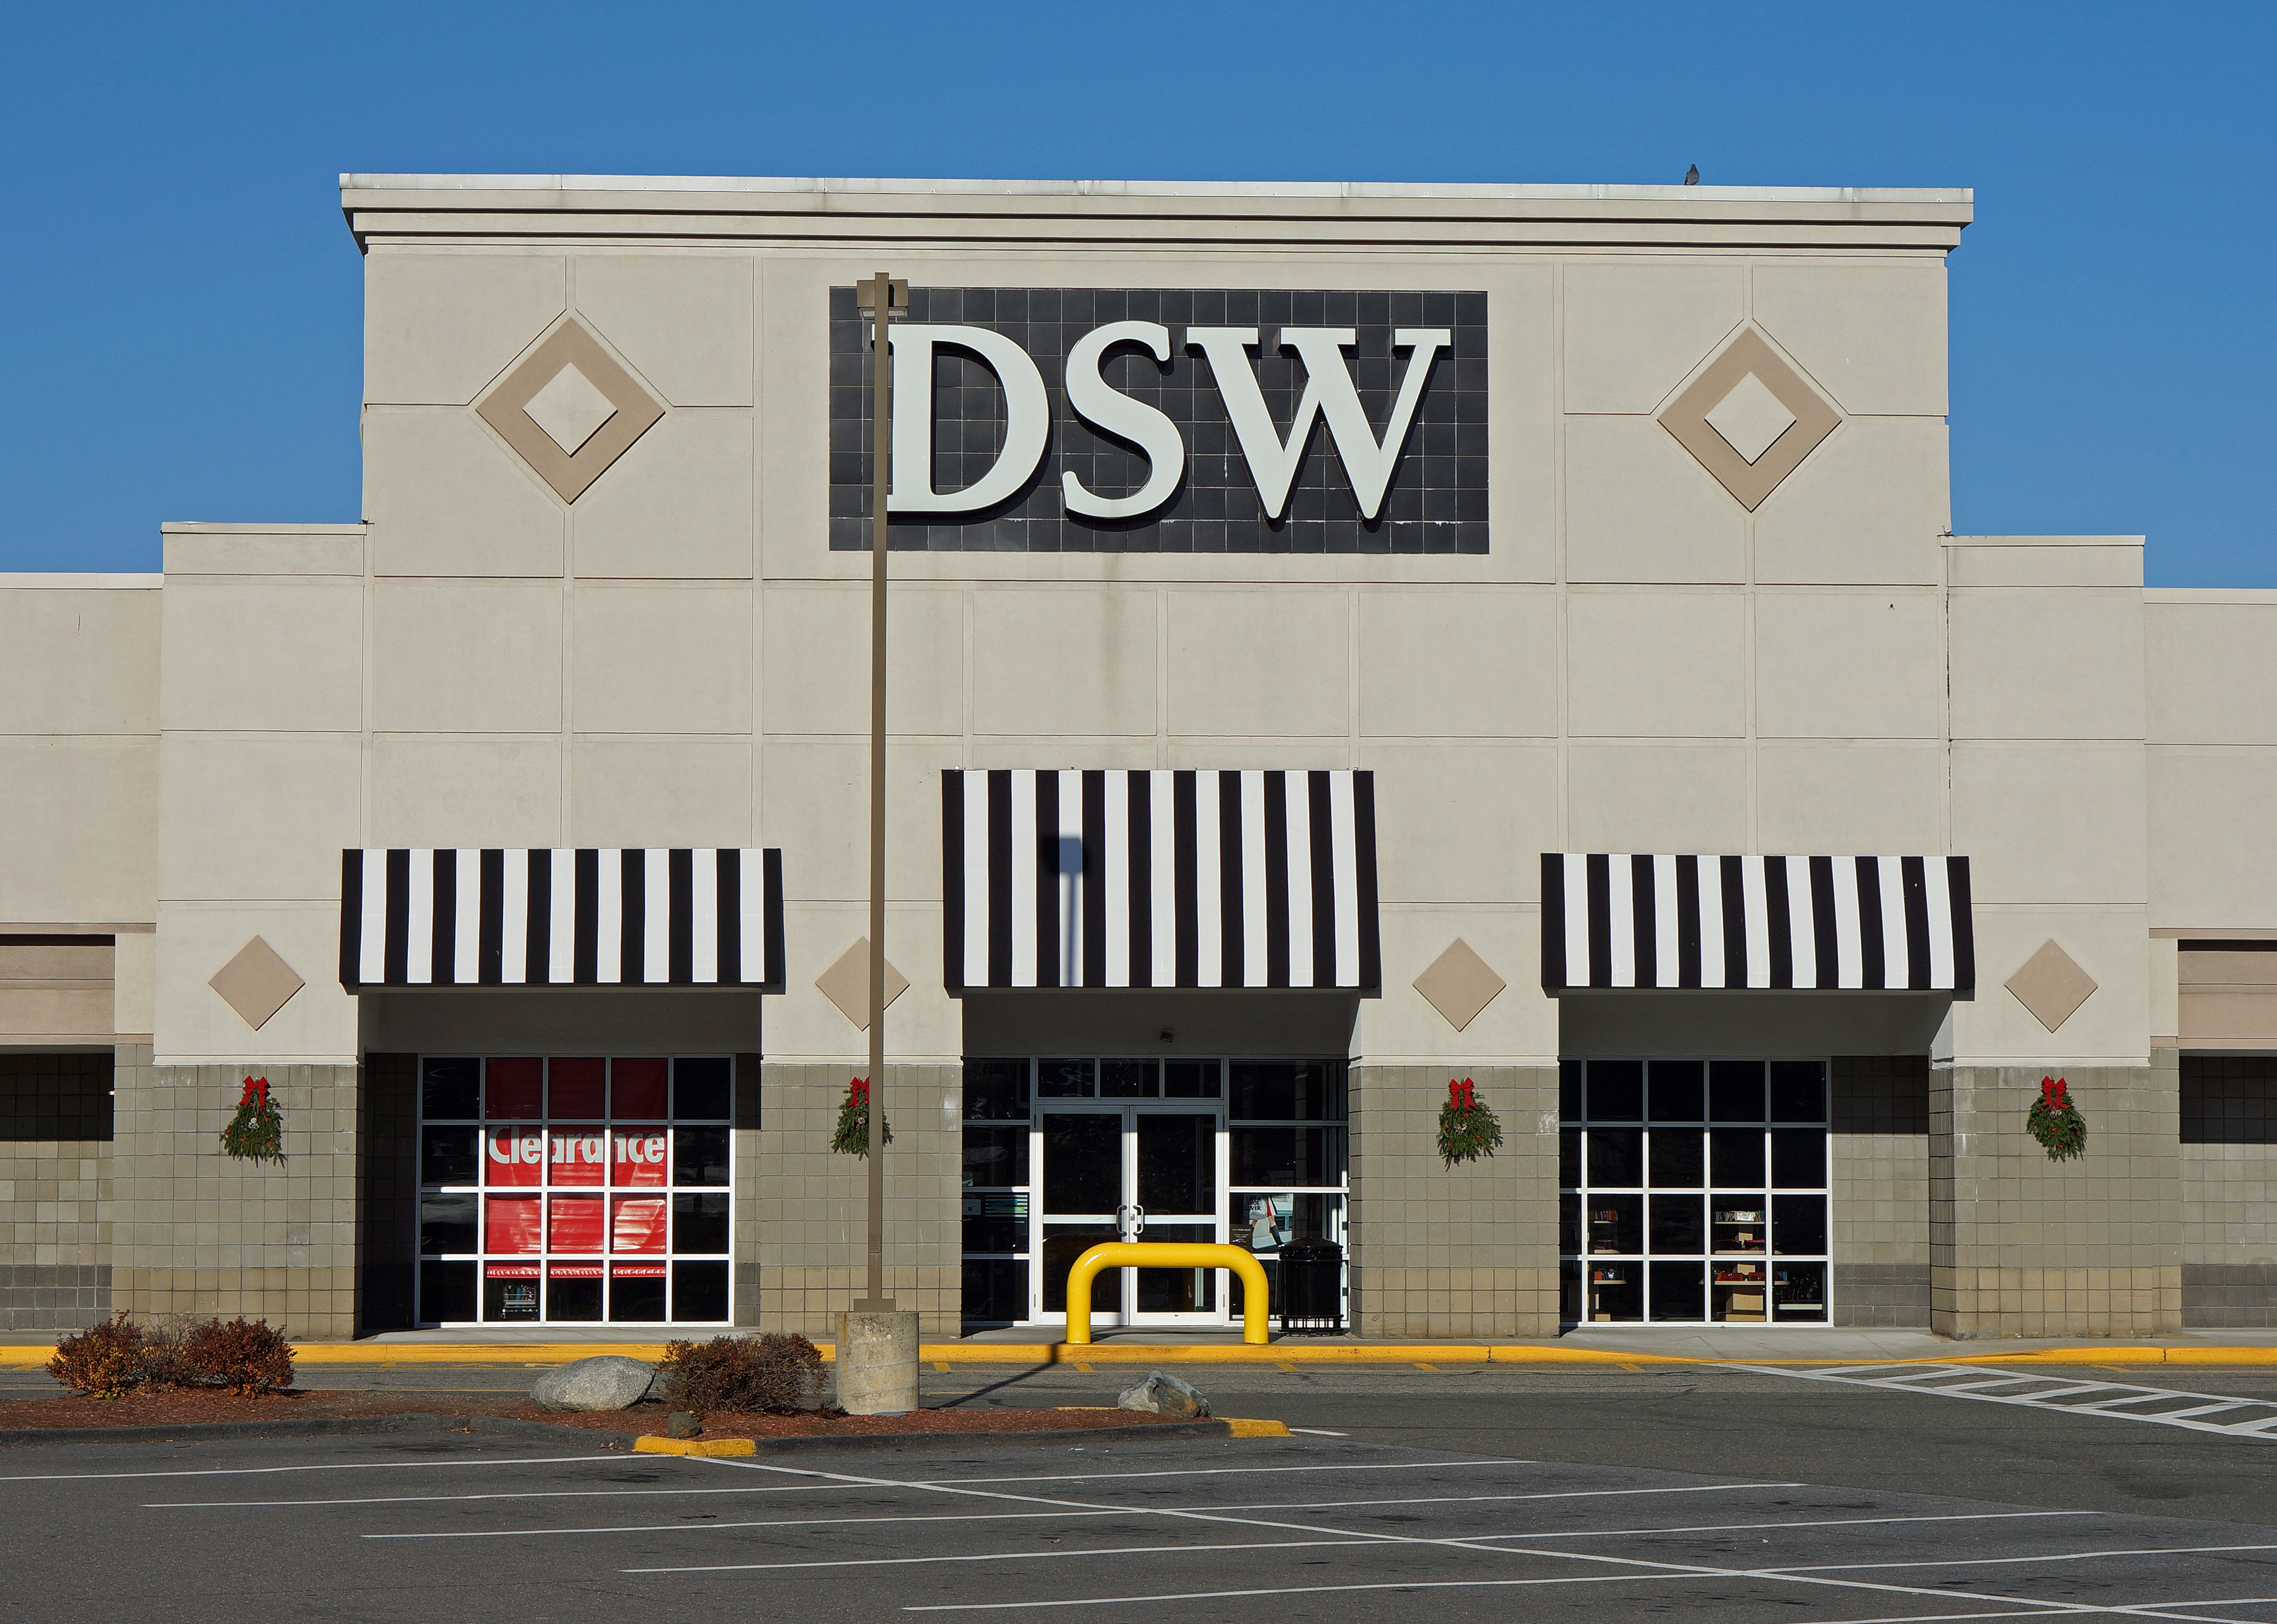 Up To 60% Off Clearance Sale In Stores & Online: Up to 60% off price drops on shoes for the whole family in their livewarext.cfs are not required, offer valid in DSW stores and online. Up To 15% Off DSW Gift Cards Don't shop DSW shoe stores without checking this page, buy gift cards up to 15% off.